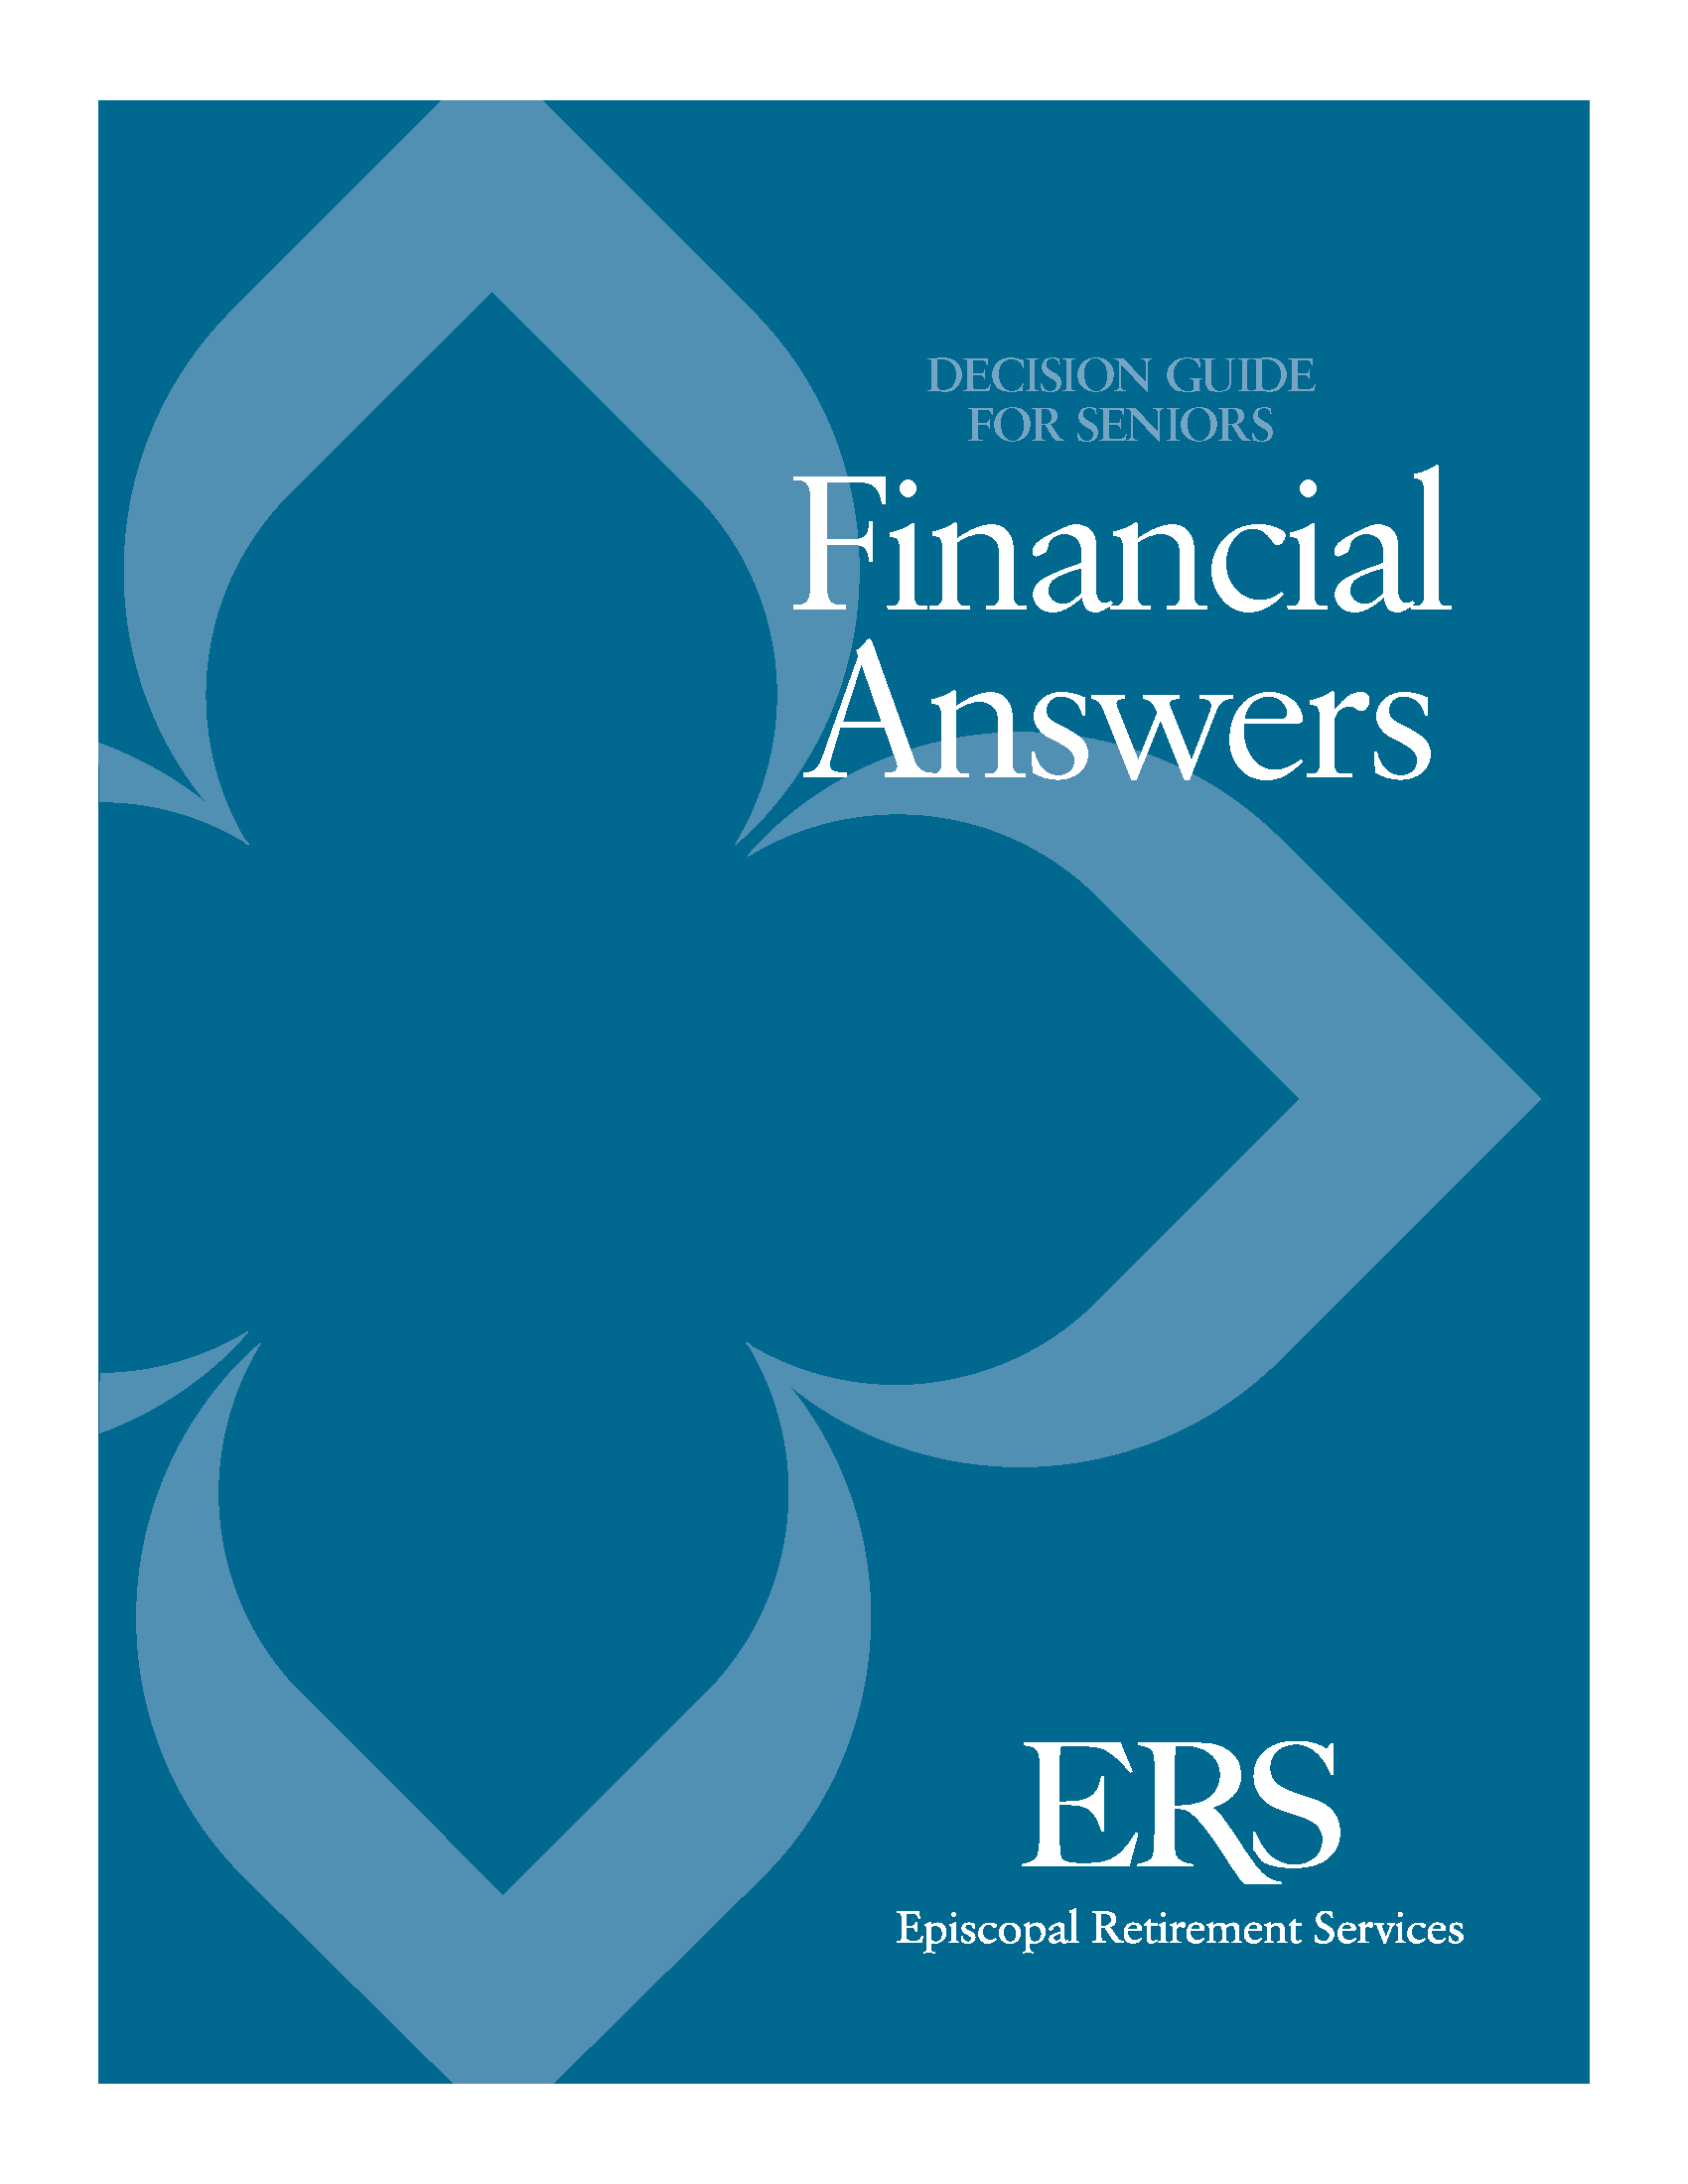 Financial Answers Decision Guide for Seniors by ERS